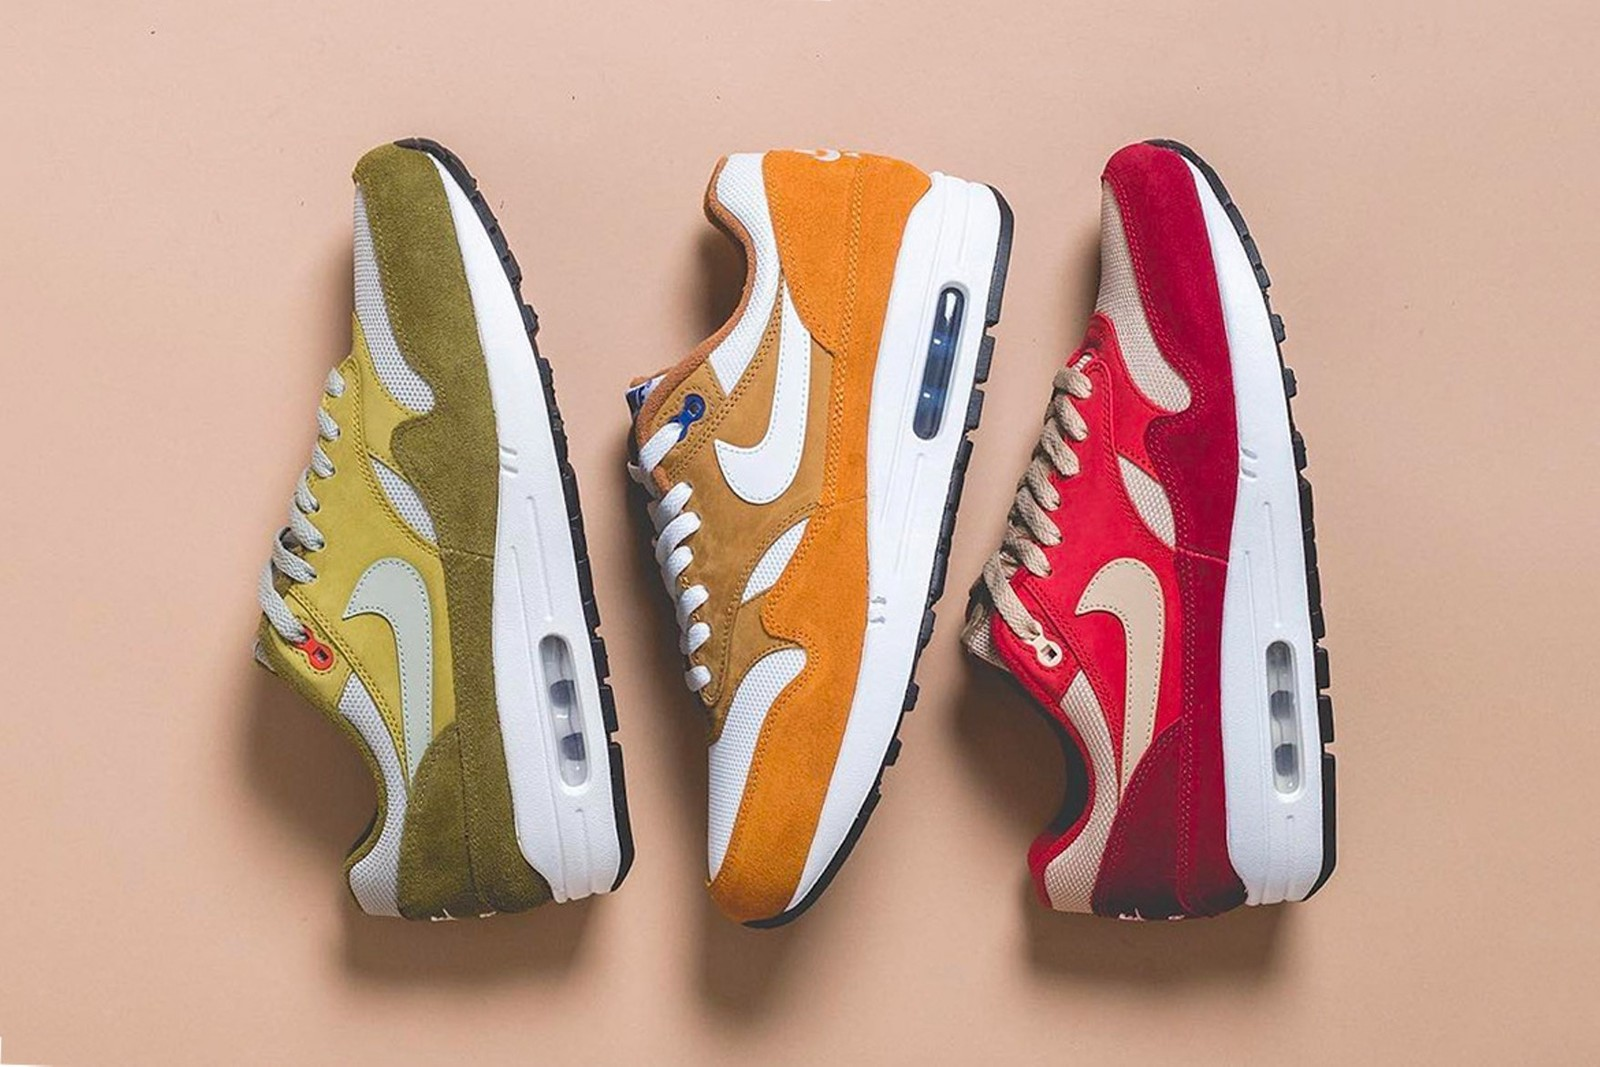 Converse Off-White Chuck Taylor The Ten Nike Air Max 1 Curry Air Jordan 1 Best Hand In The Game